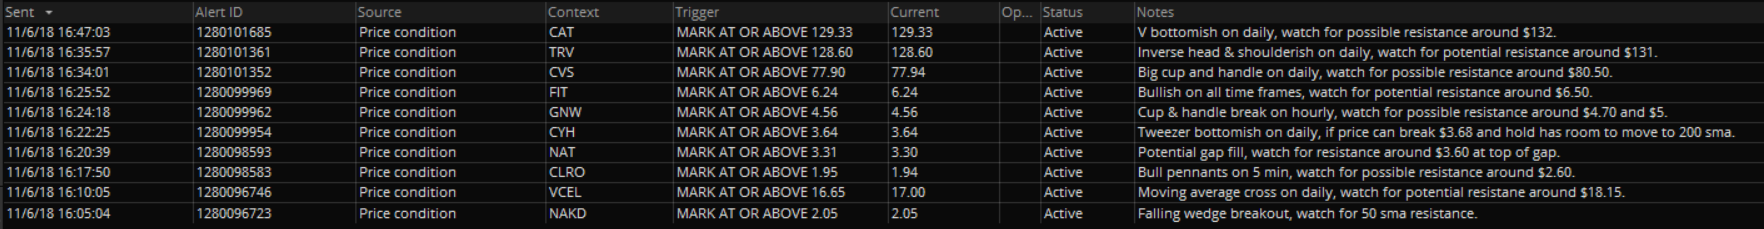 trade alerts results